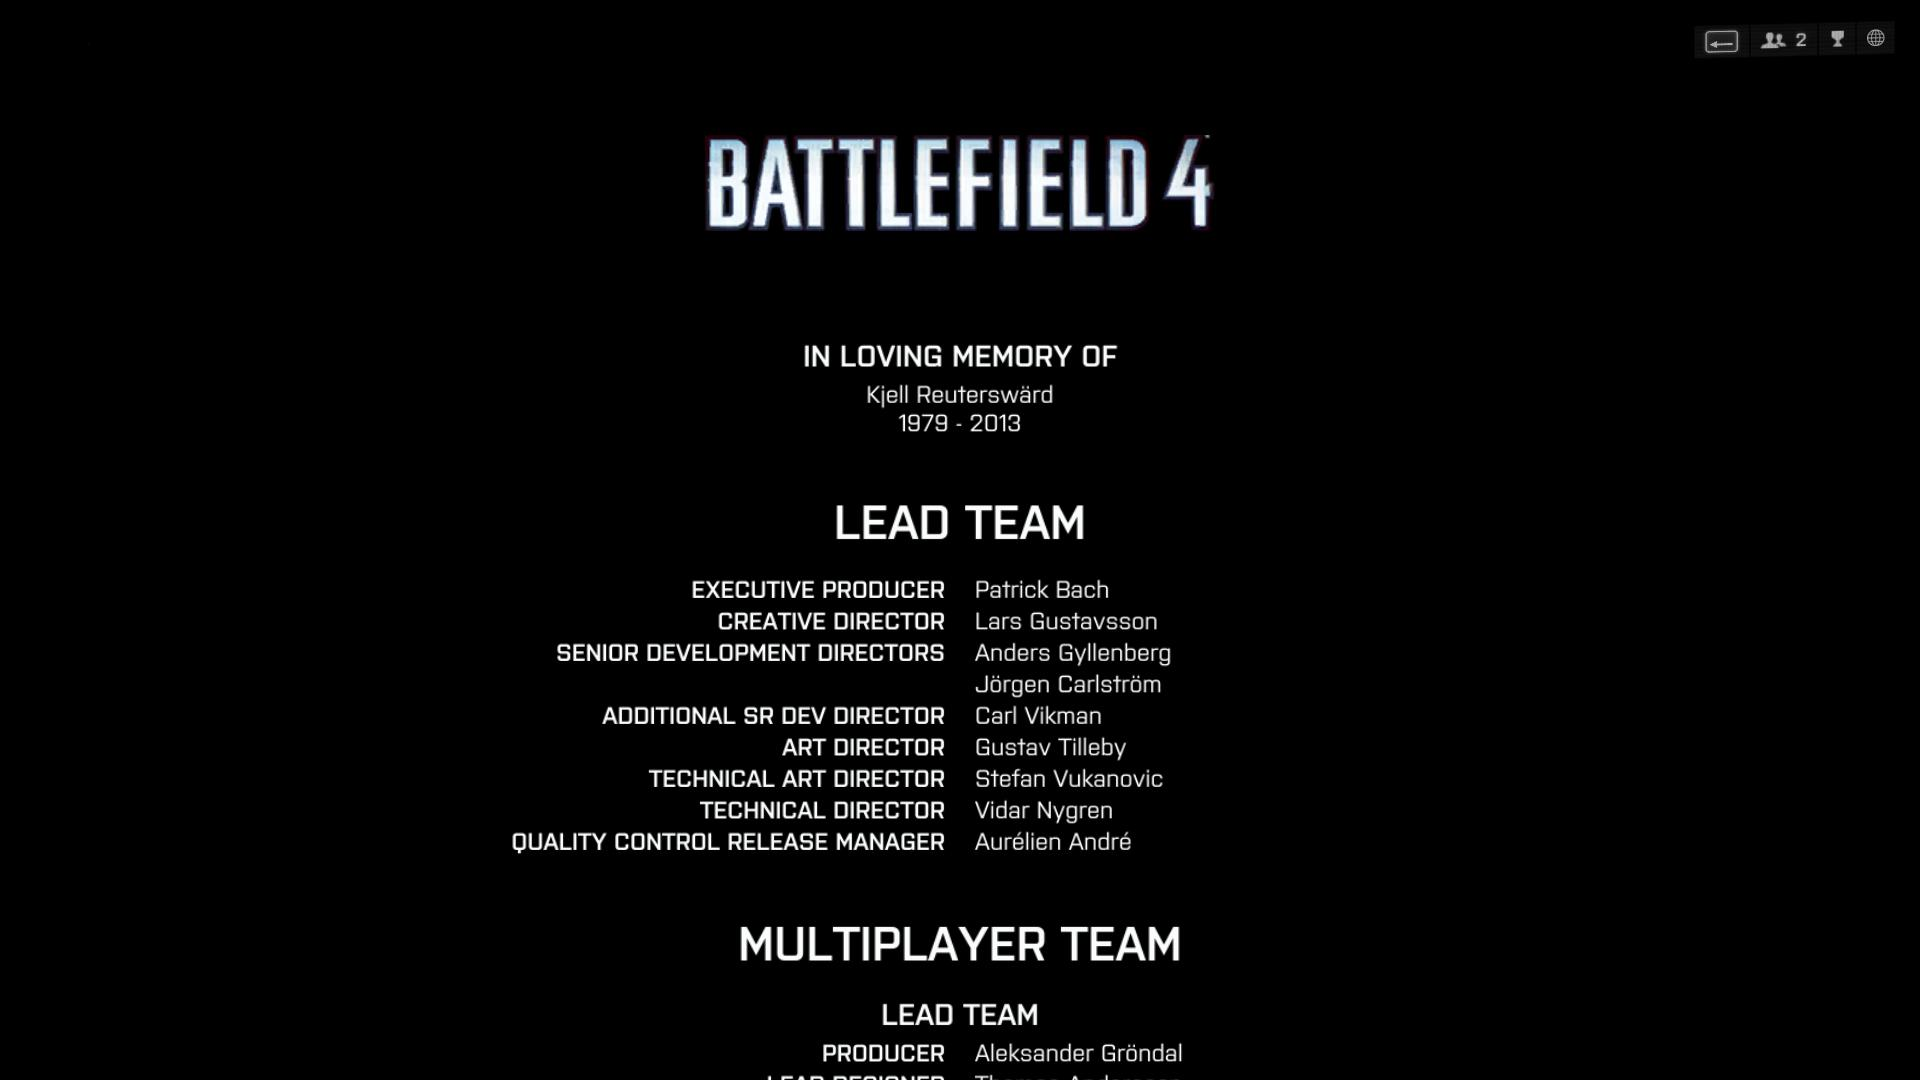 battlefield 4 s campaign is around 4 hours long claims reddit user